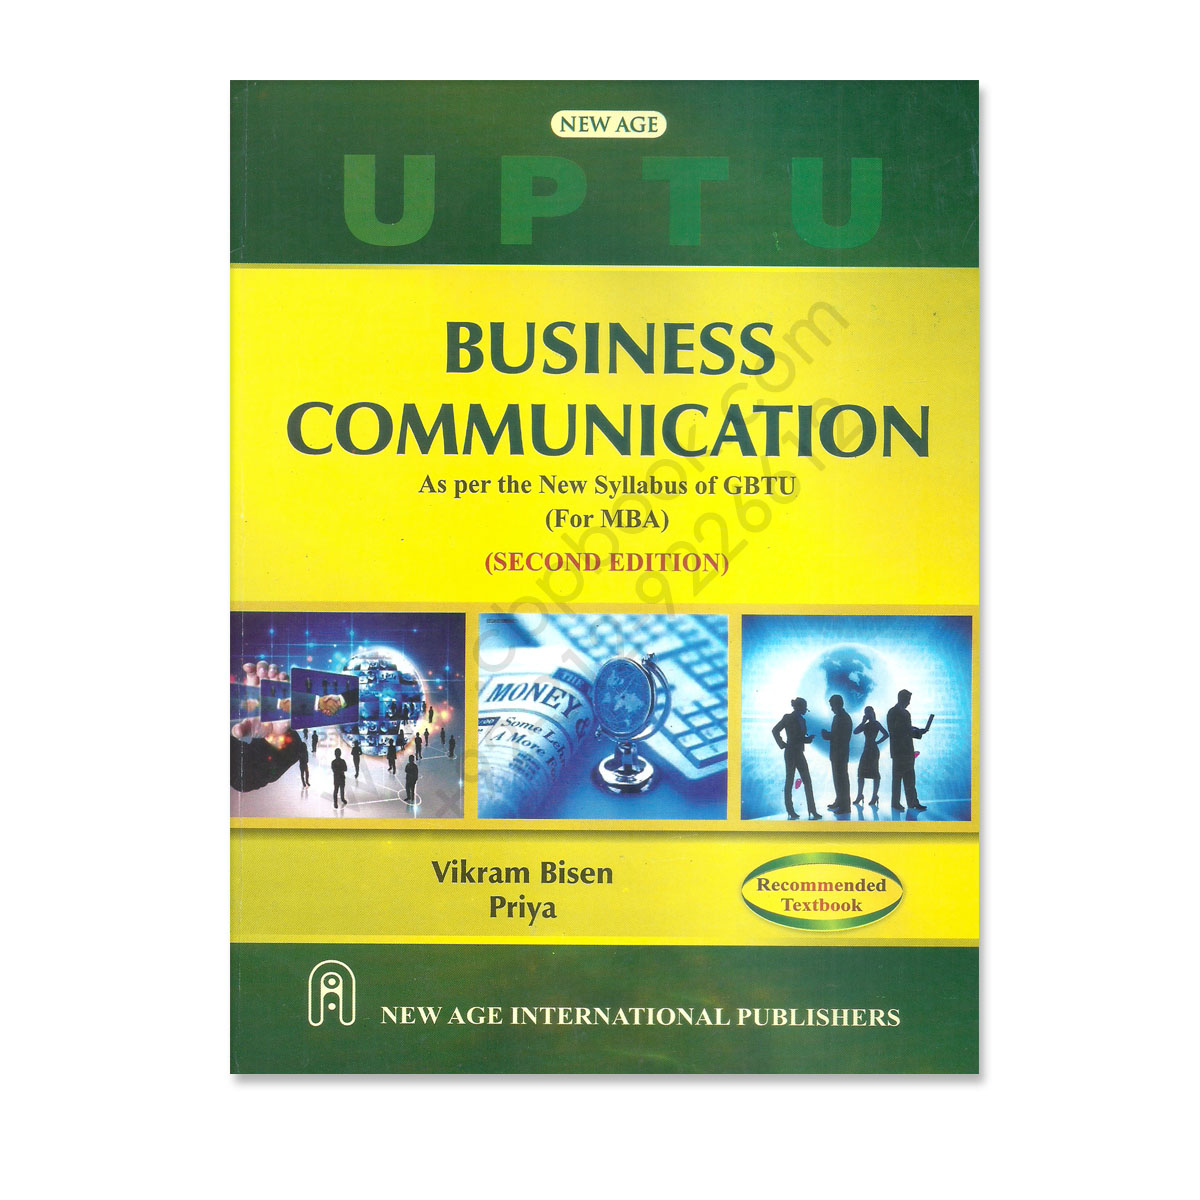 business commnication for mba 2nd edition by vikram bisen priya